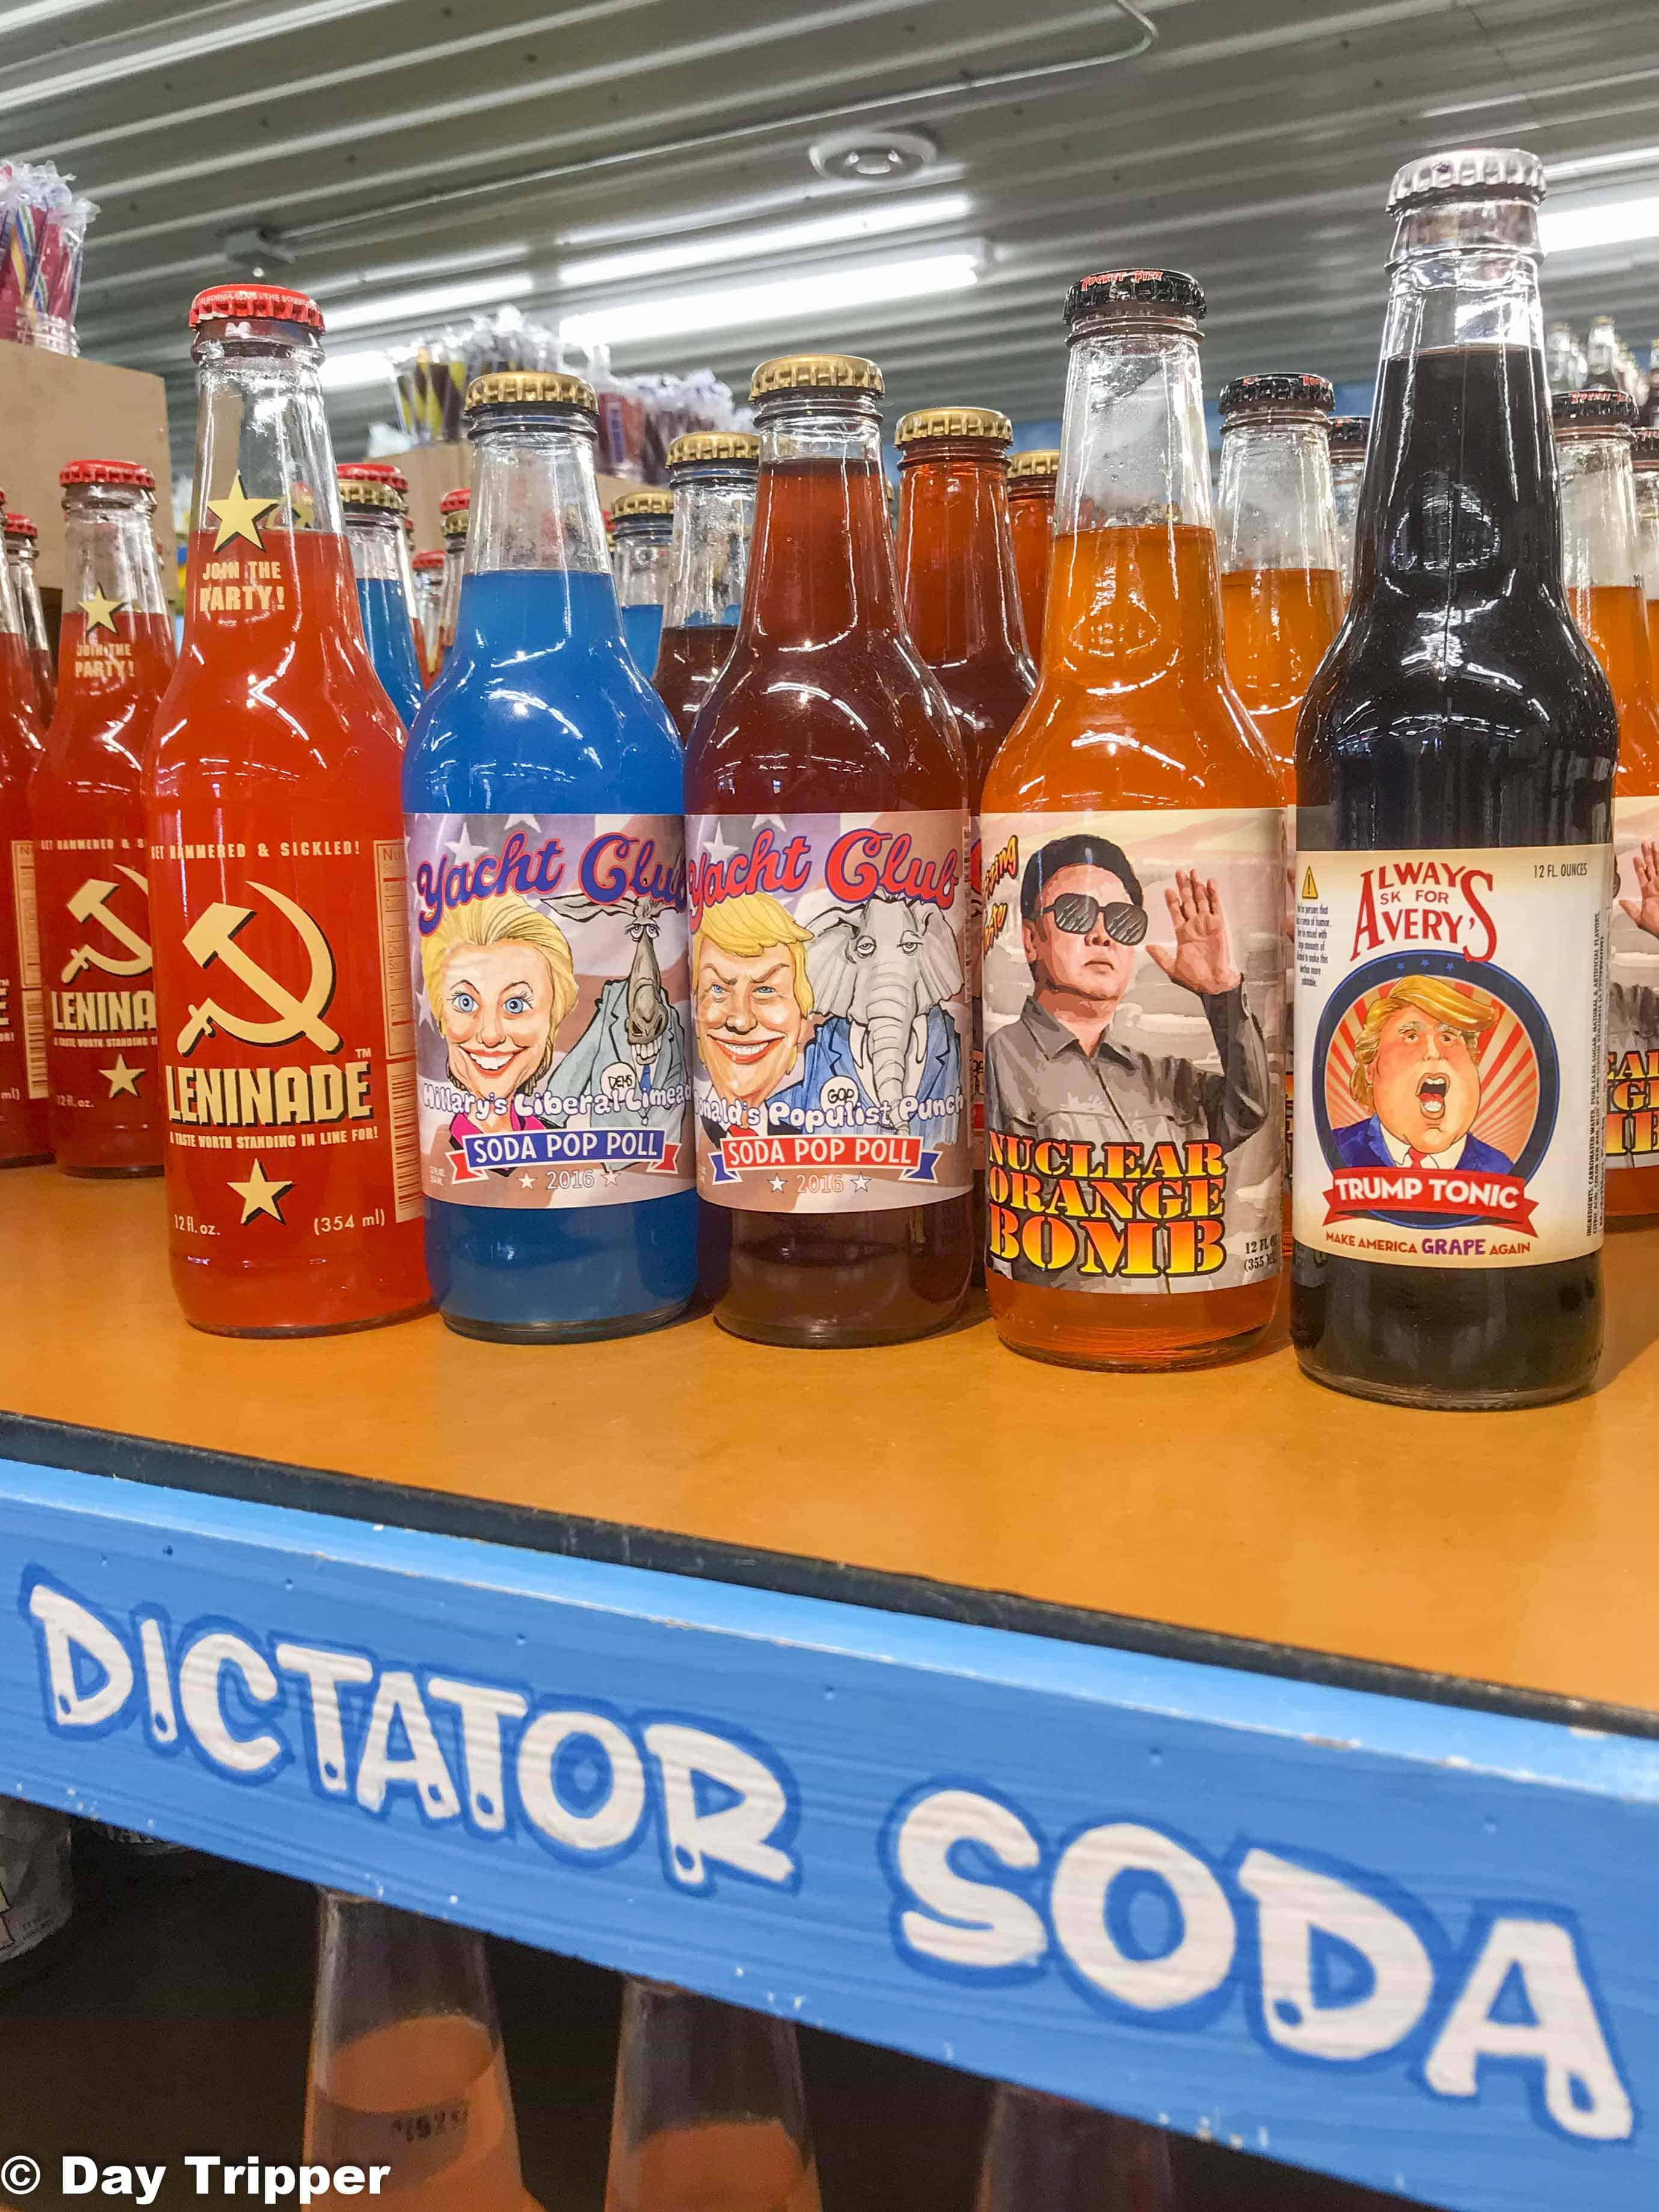 The Soda selection is endless at the candy store.